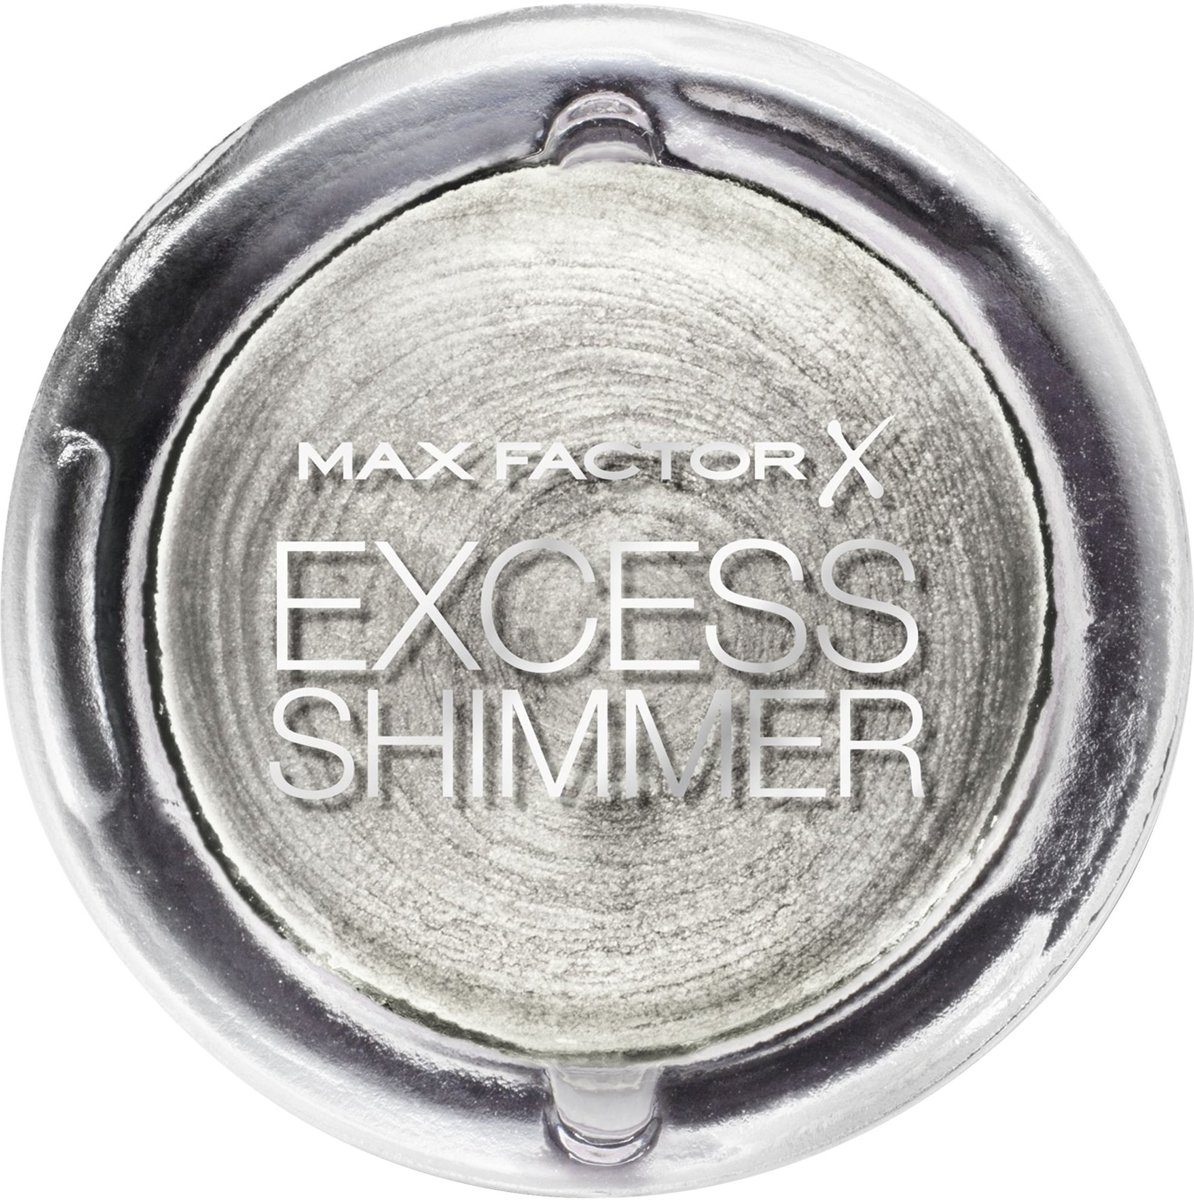 Max Factor Excess Shimmer - 005 Crystal - Oogschaduw